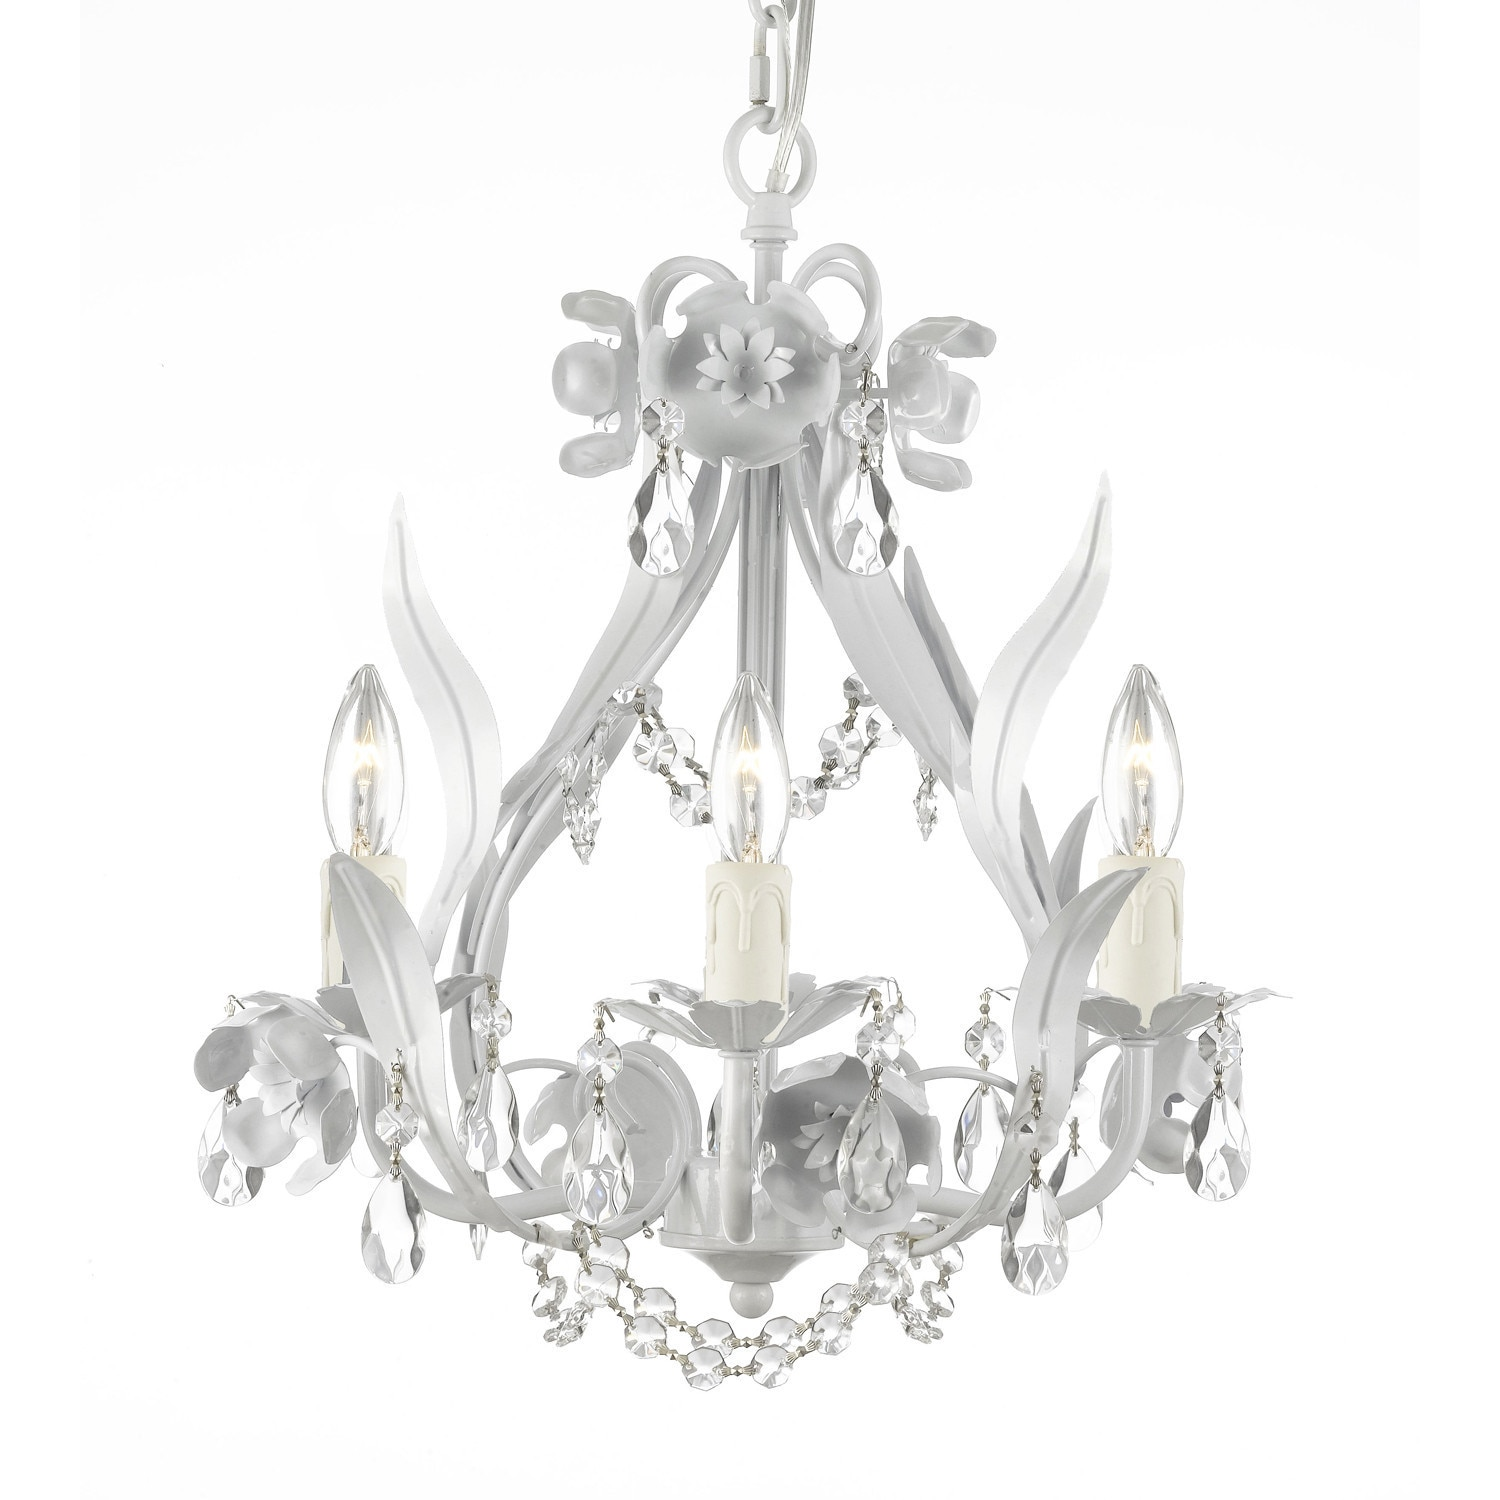 Gallery floral wrought iron and crystal white swag plug in 4 light gallery floral wrought iron and crystal white swag plug in 4 light mini chandelier free shipping today overstock 17131532 arubaitofo Image collections